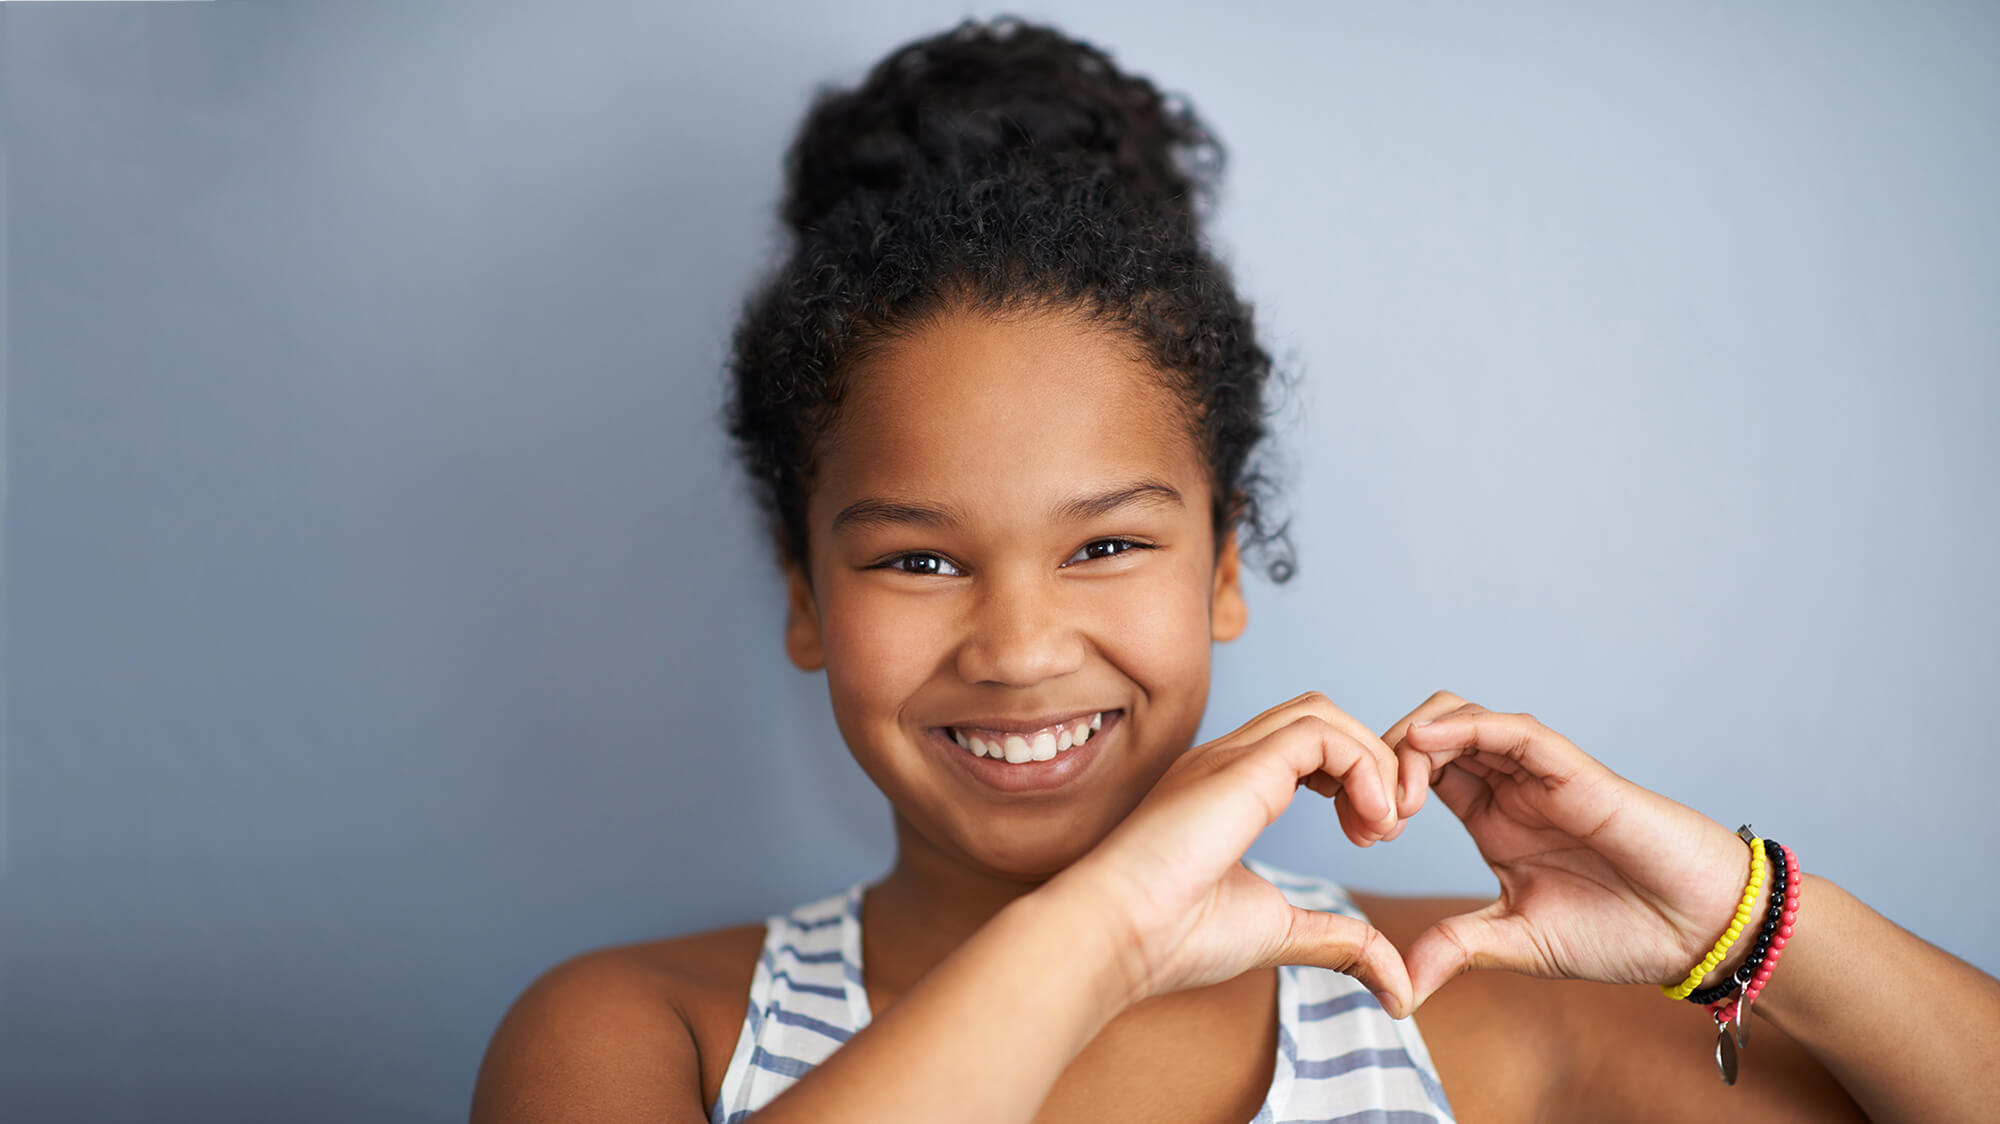 Young smiling girl making a heart with her hands